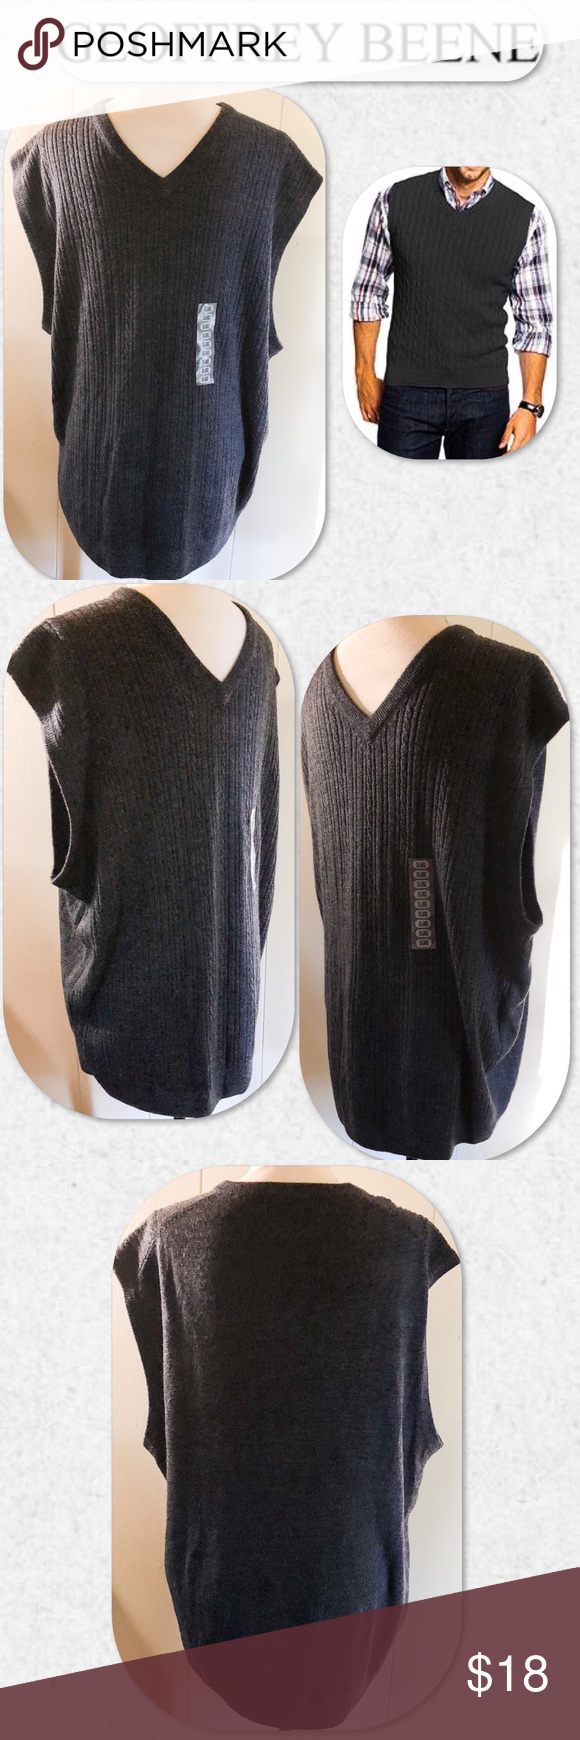 acb391bb1111b Geoffrey Beene Sleeveless V-Neck Sweater Vest NWT. Cable knit design on  front